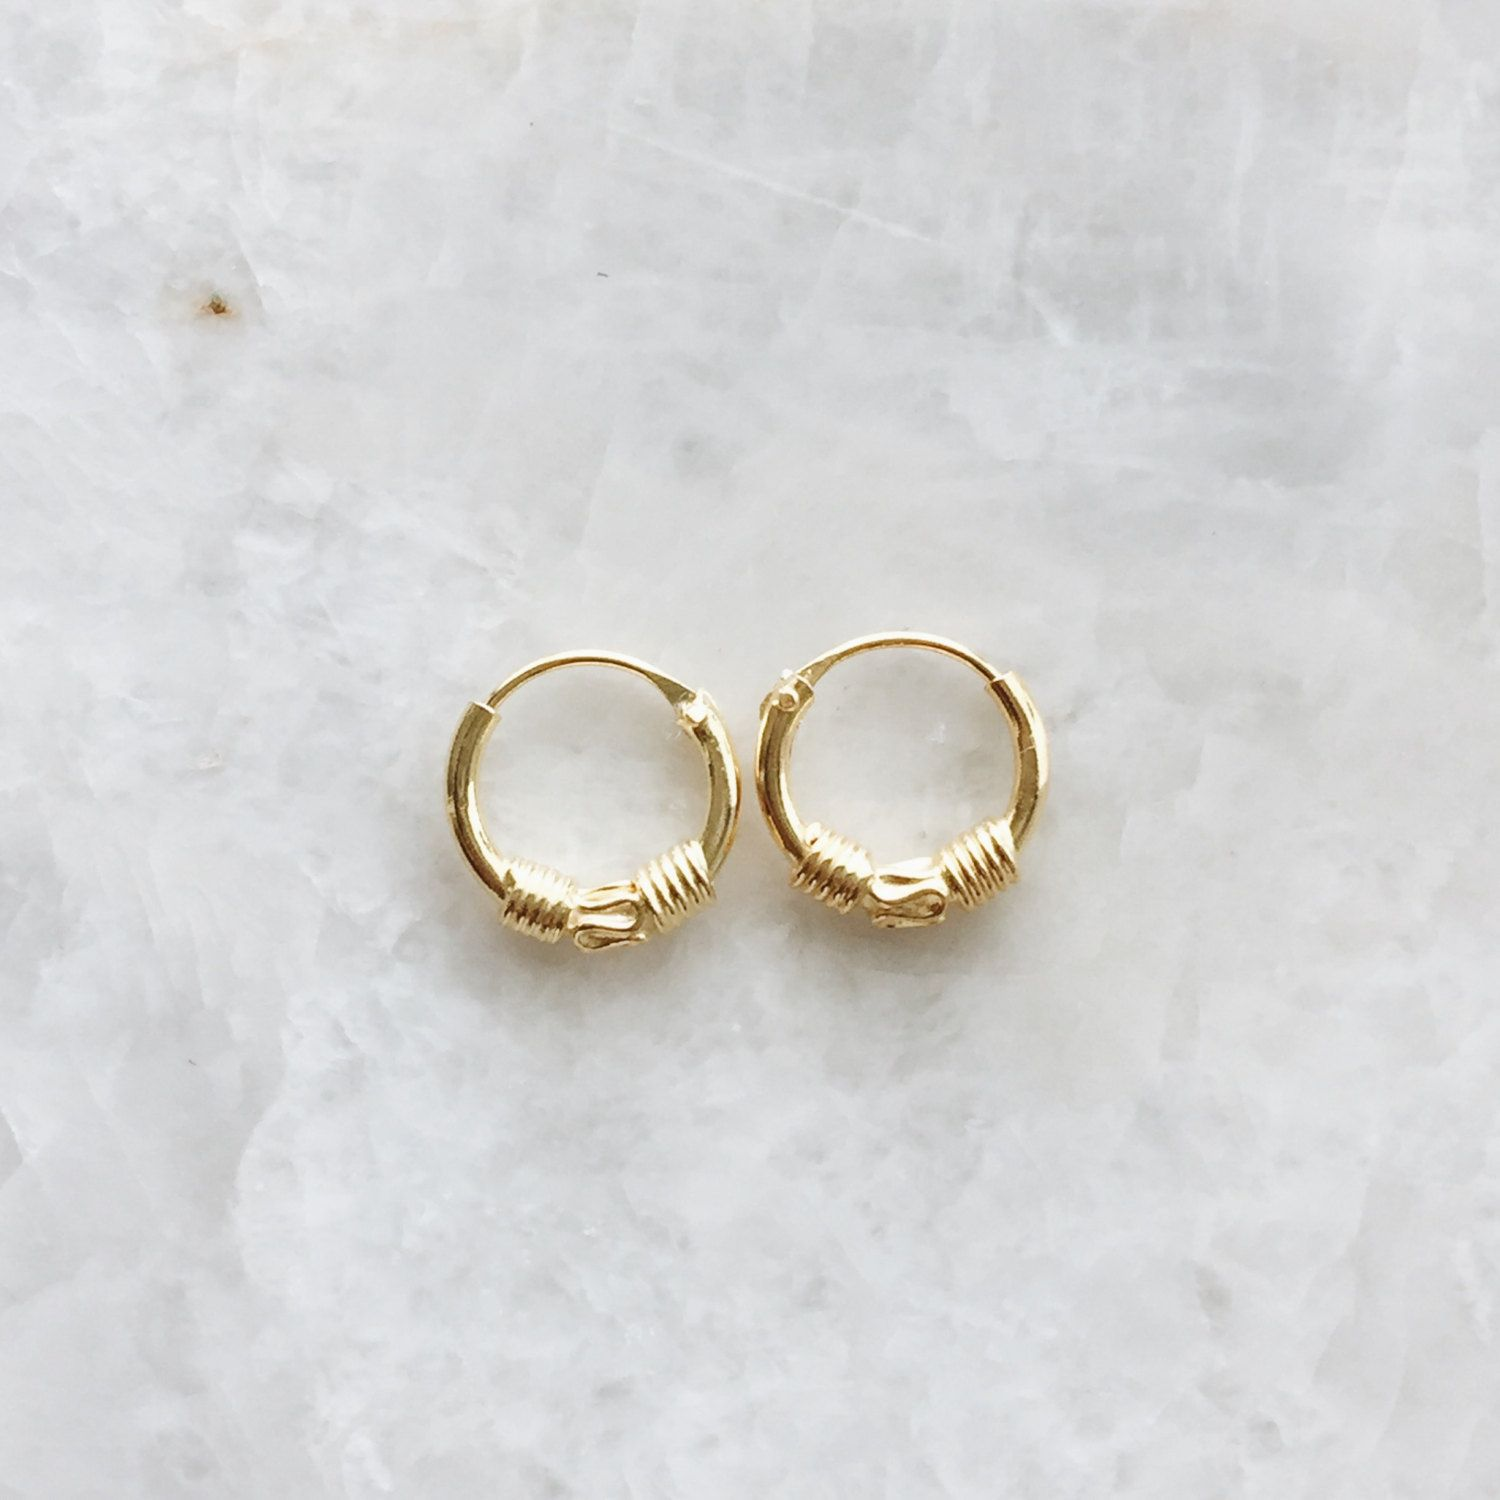 Gold Plated Bali Style Tribal Ear Hoops, Tiny Gold Balinese Hoop Earrings,  Tribal Style